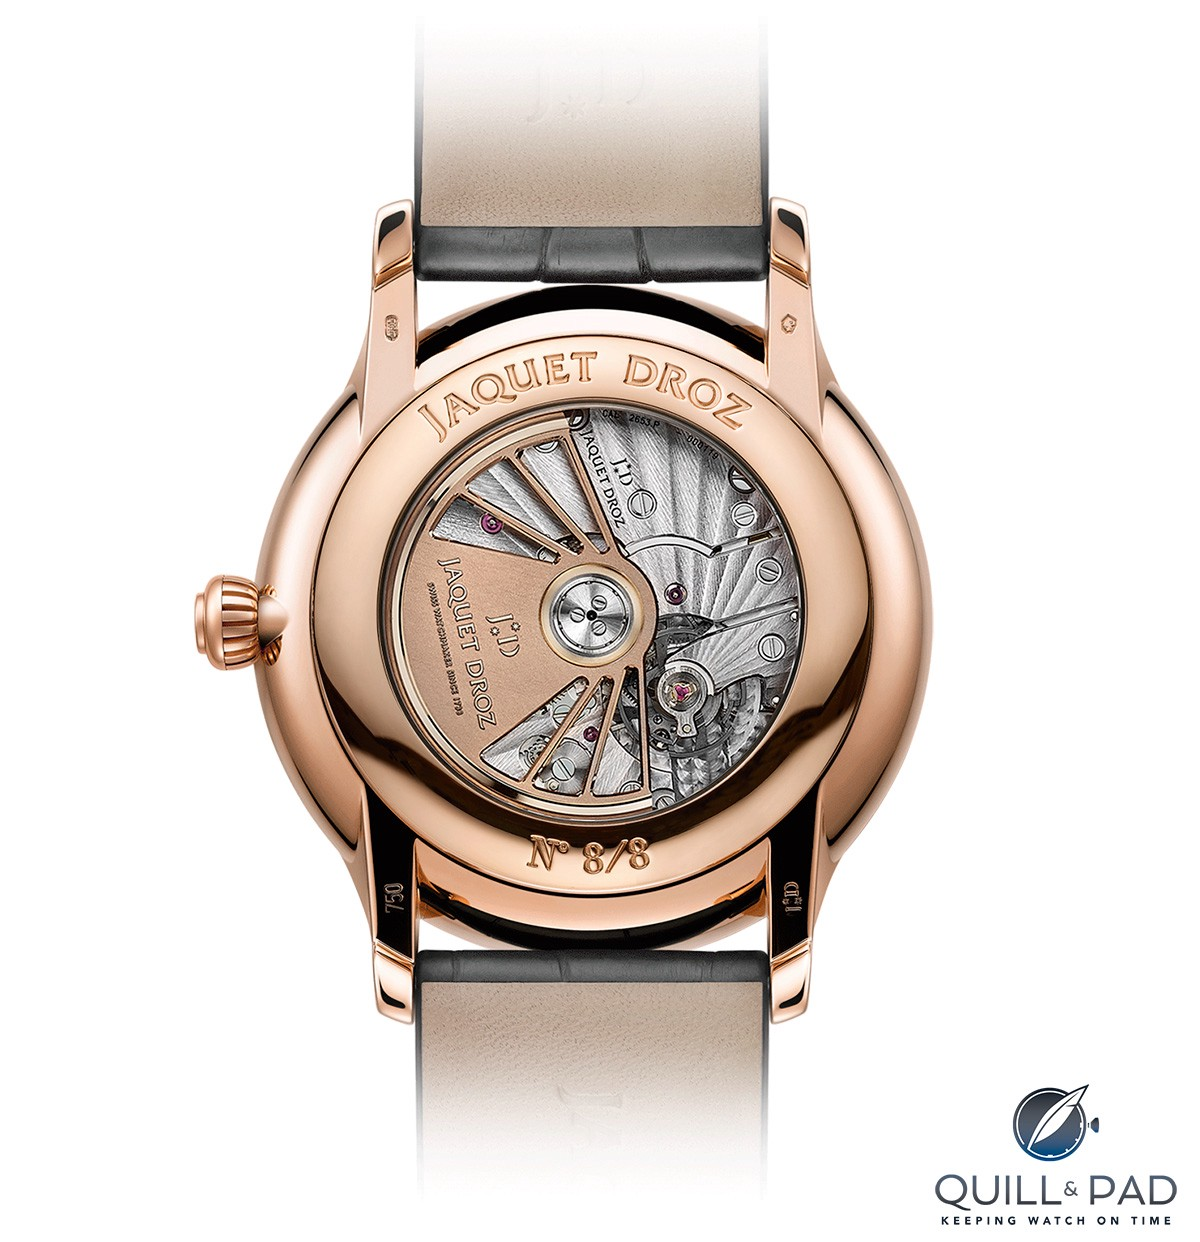 View through the display back of the Jaquet Droz Petite Heure Minute Paillonnée